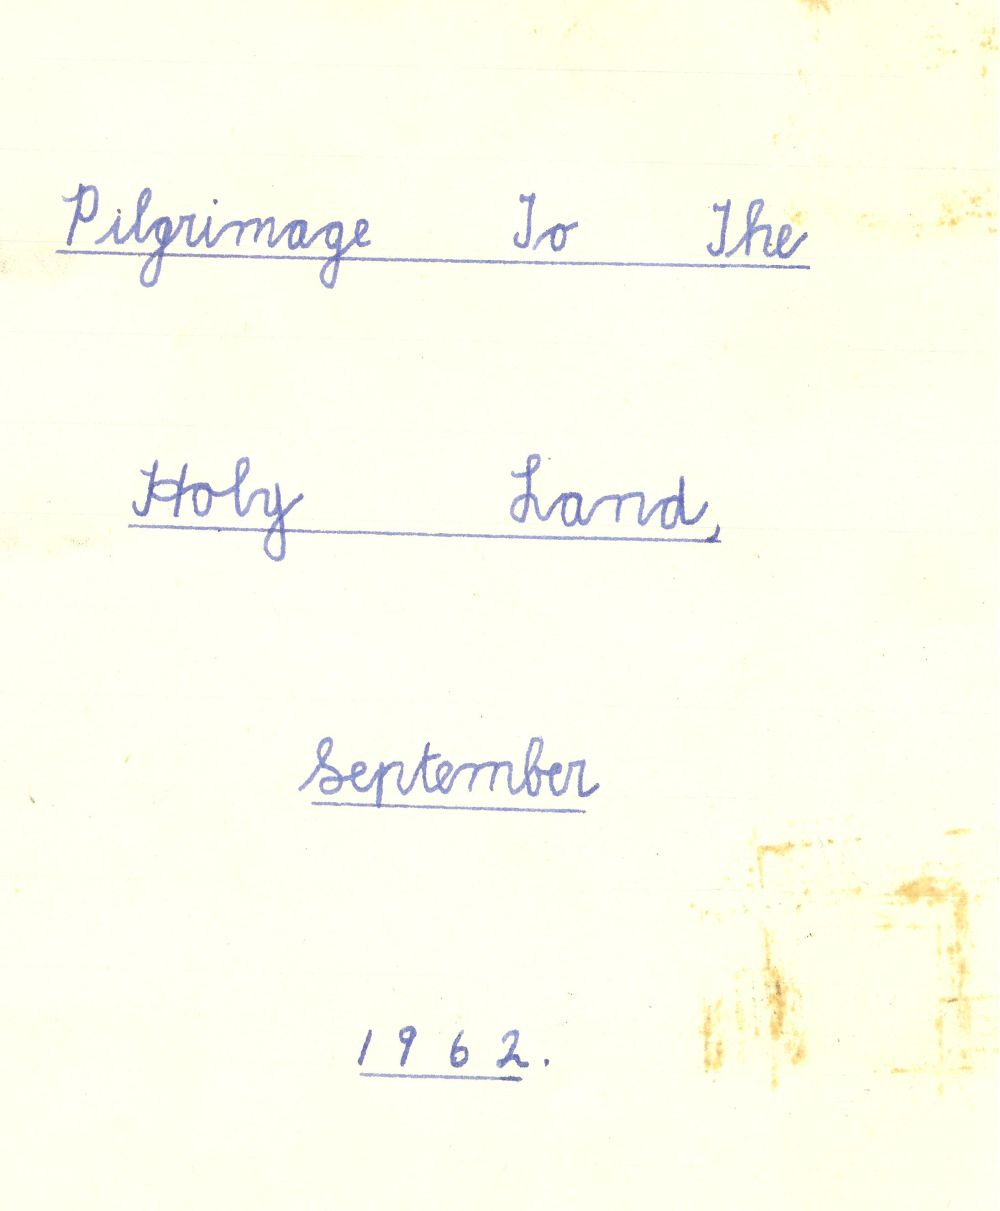 Title page from 'Pilgrimage to the Holy Land, September 1962' compiled by Patricia H. Ledbetter, RCB Library Ms 605